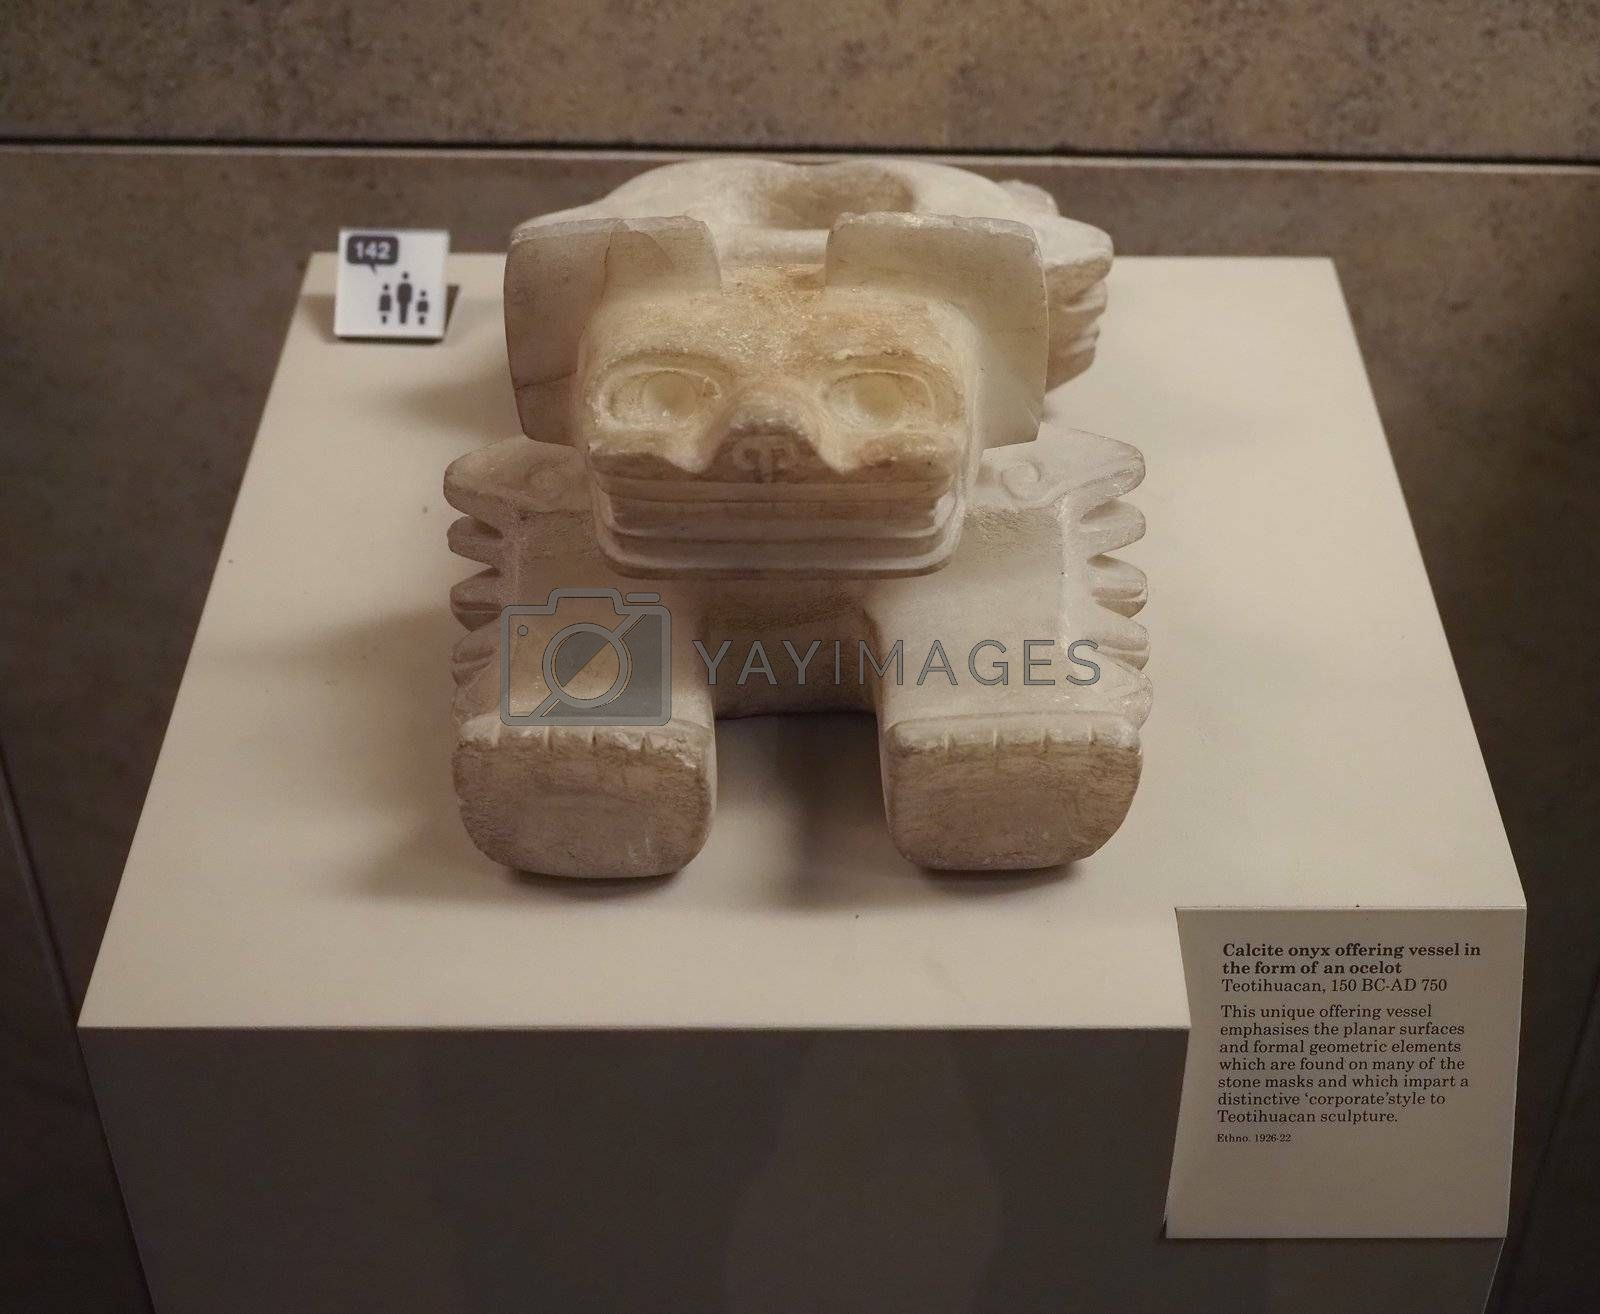 LONDON, UK - CIRCA SEPTEMBER 2019: Calcite onyx offering vessel in the form of an ocelot at The British Museum